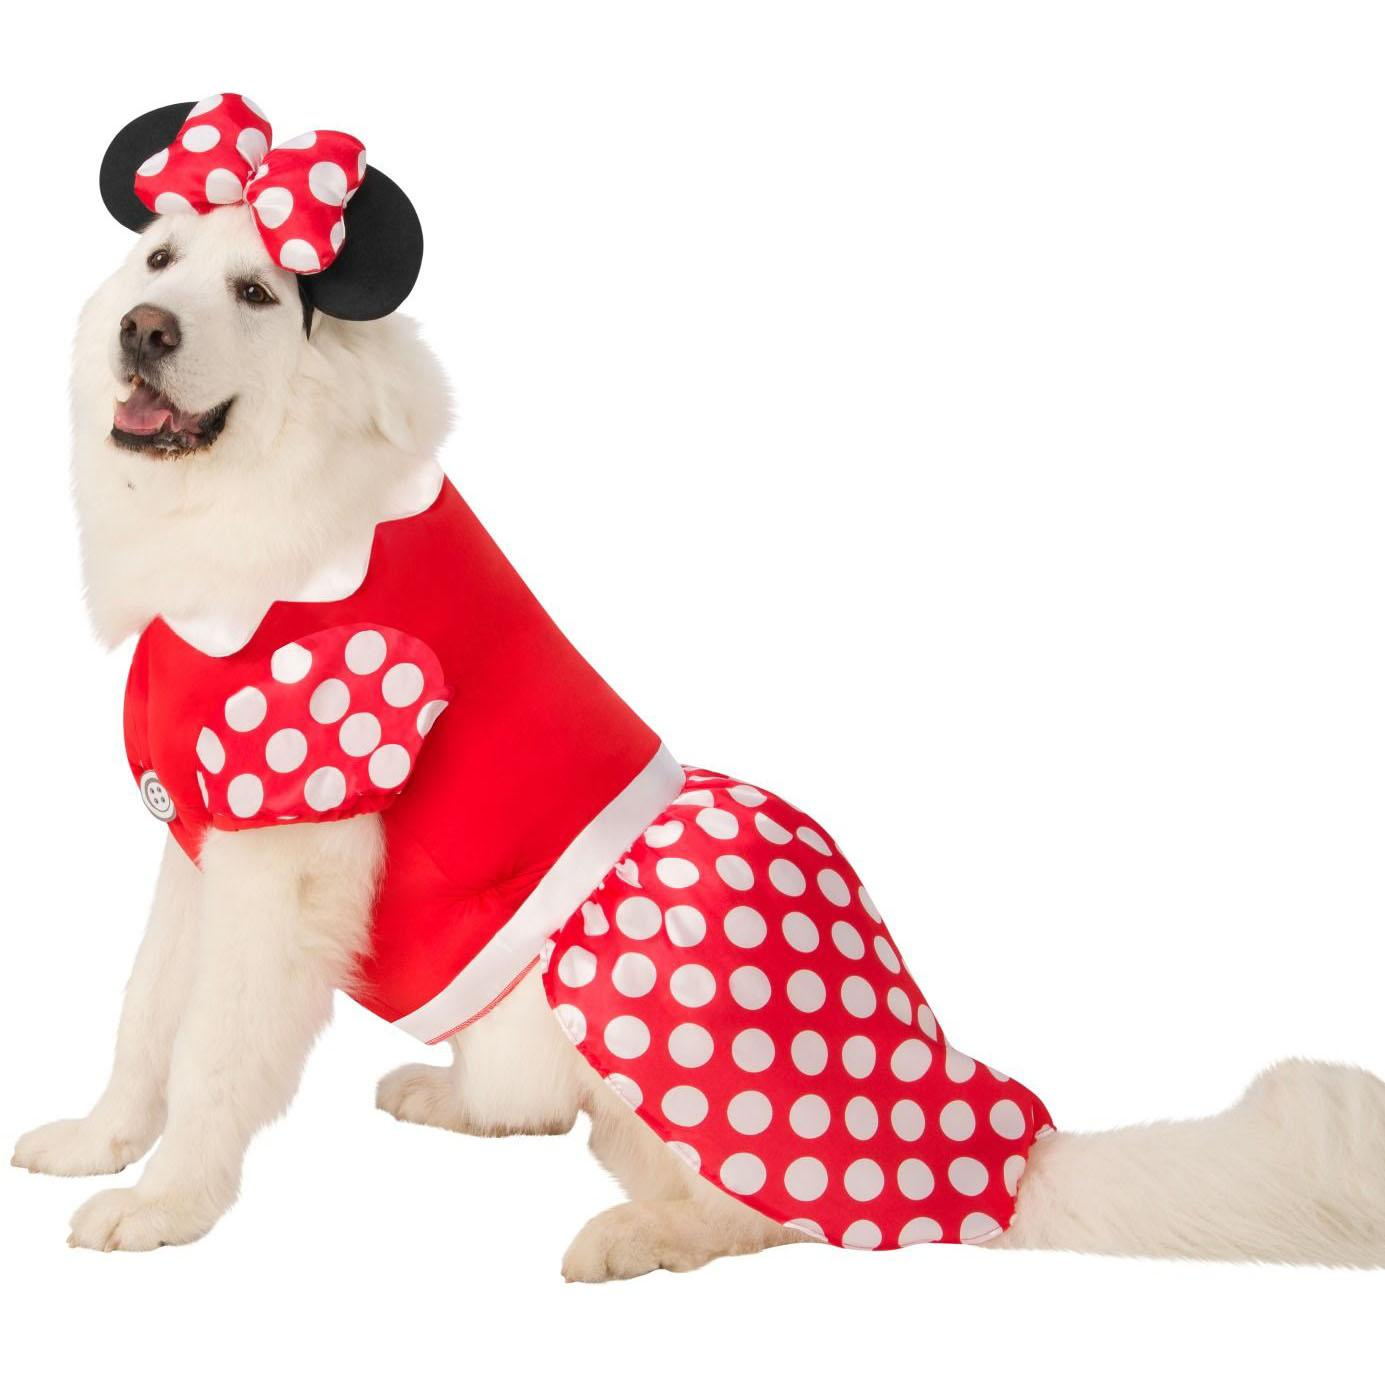 Big Dog Minnie Mouse Dog Costume by Rubie's